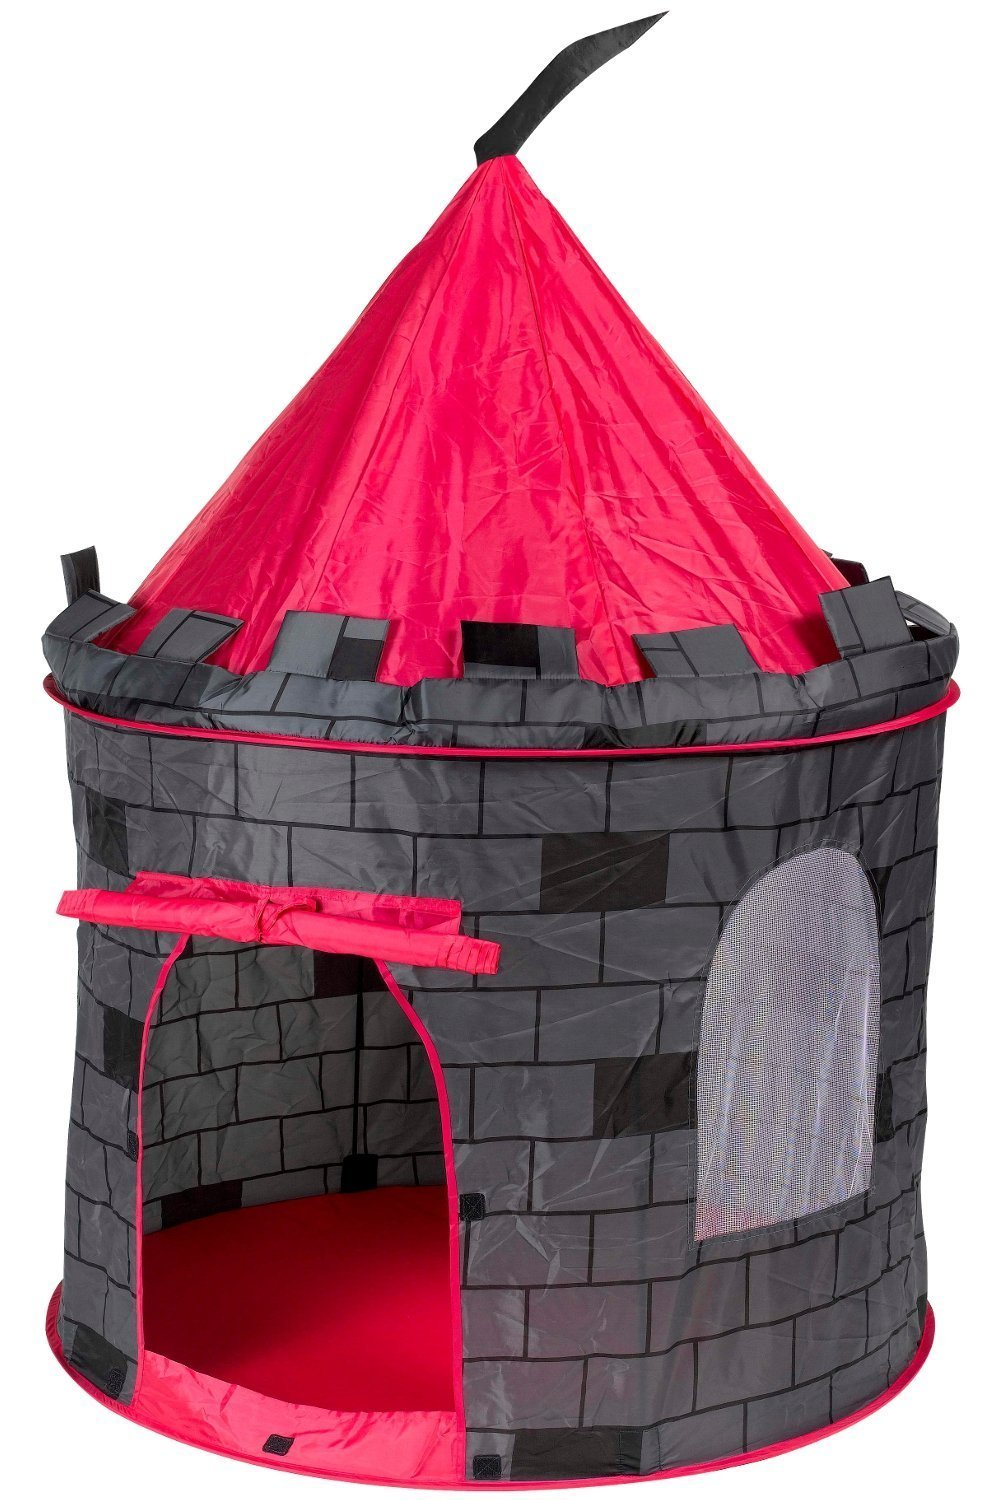 Kids Play Tent Knight Castle Prince House Kids Play Tent Bestter Choices